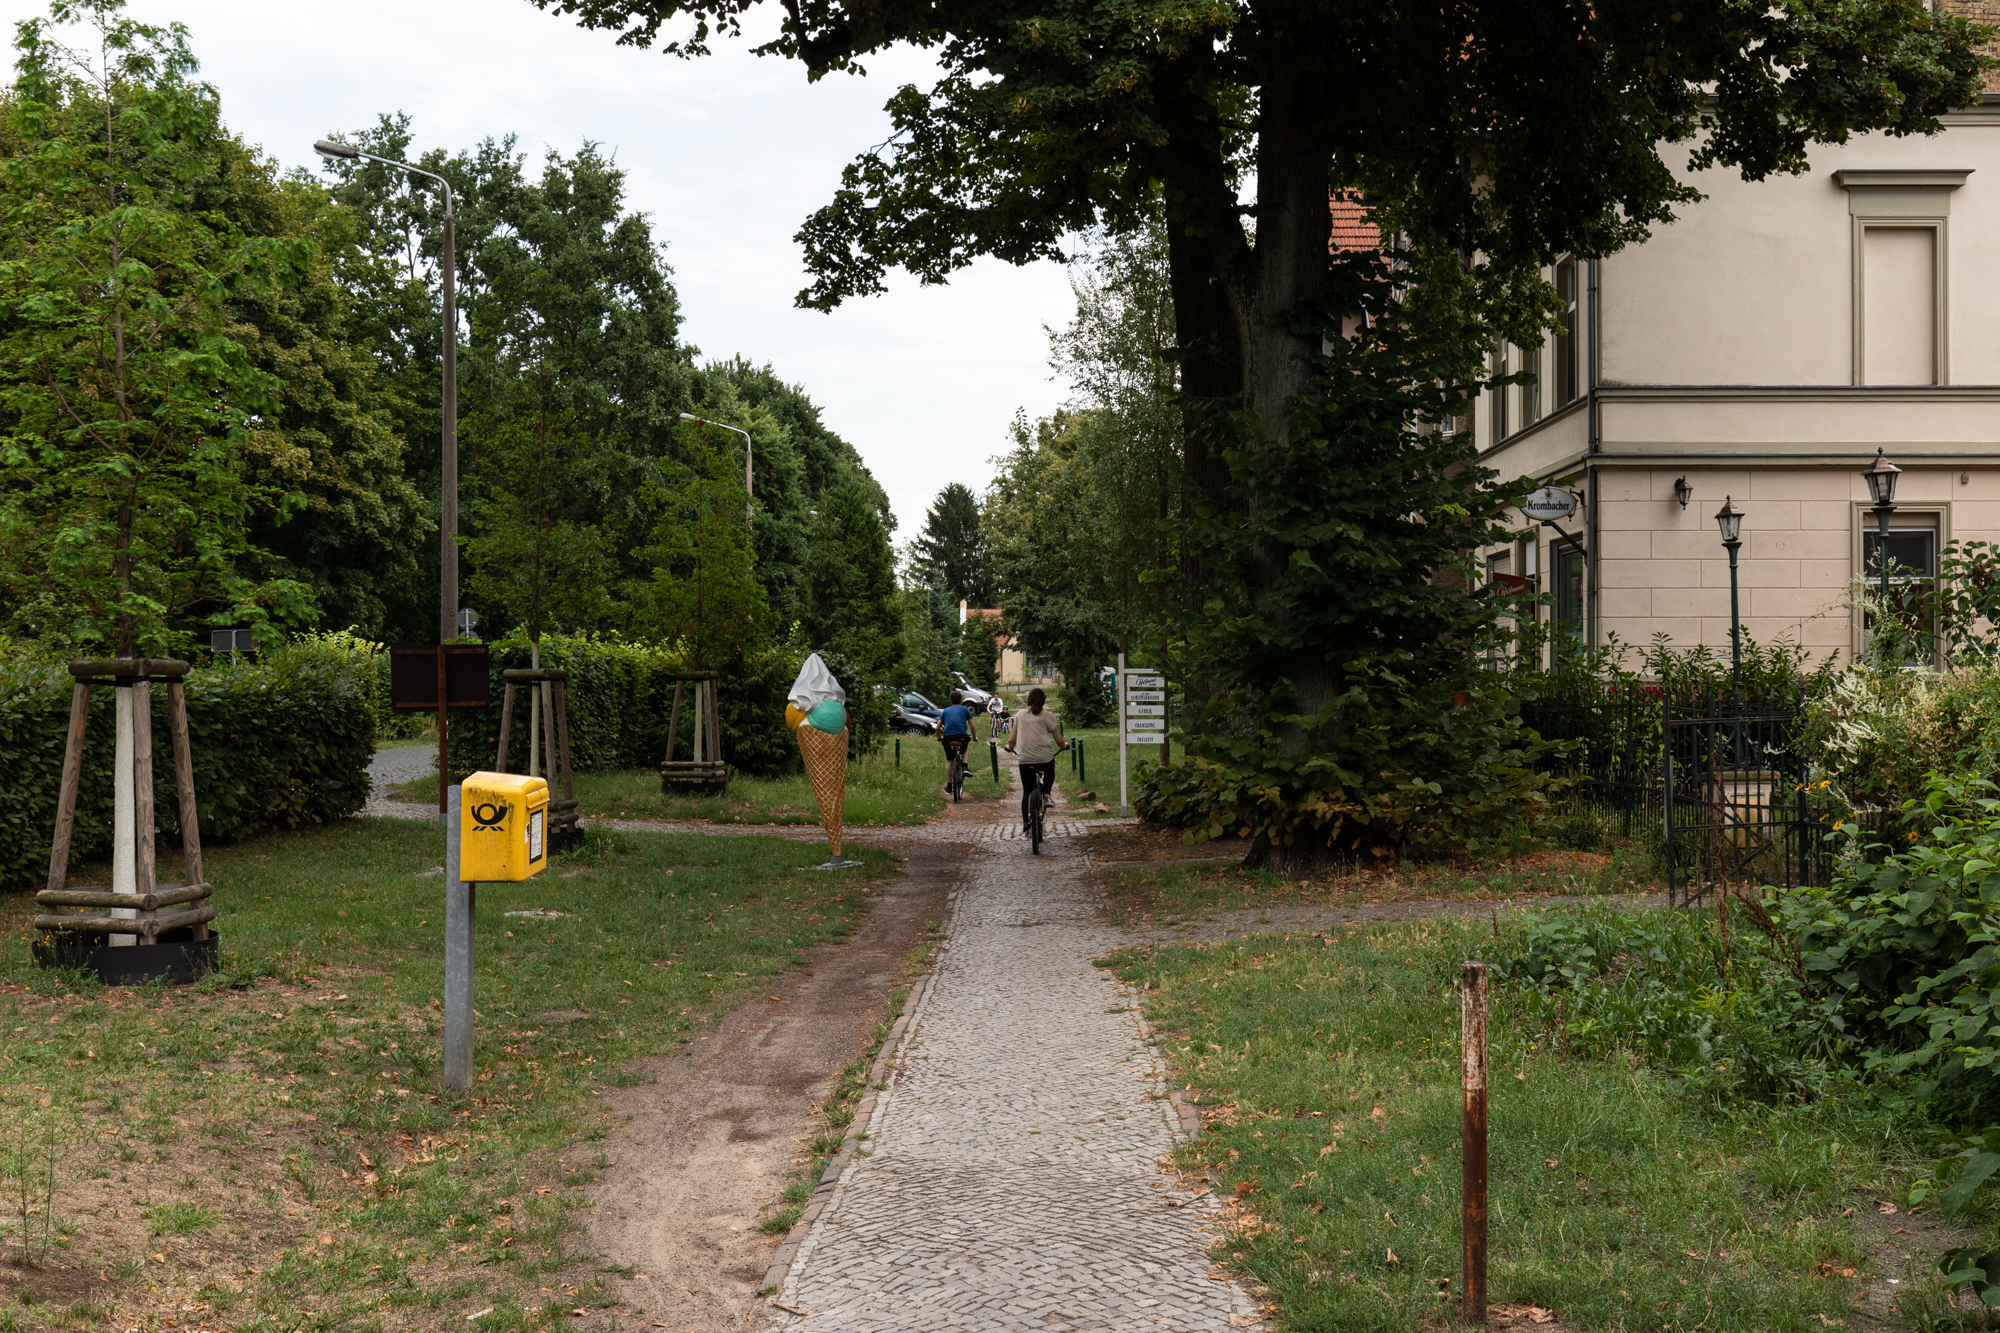 Waldmüllerstrasse in Klein Glienicke - a former East German enclave separated from West Berlin by the Berlin Wall and only accessible with special permission